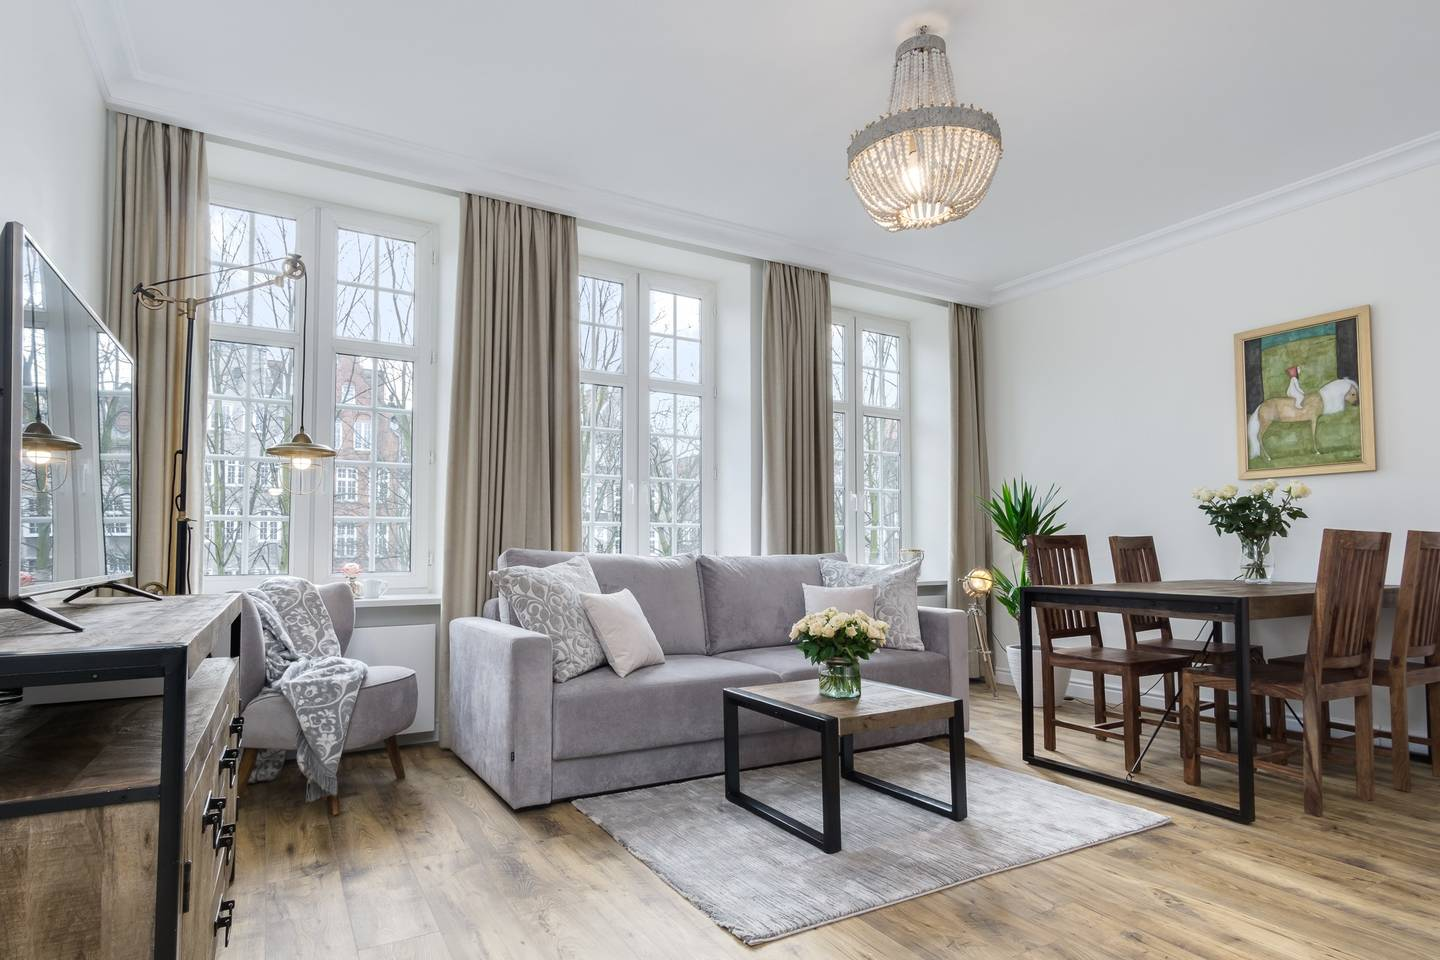 Apartment Kings Queens in Oldtown  stylish  sunny  spacious photo 28161369